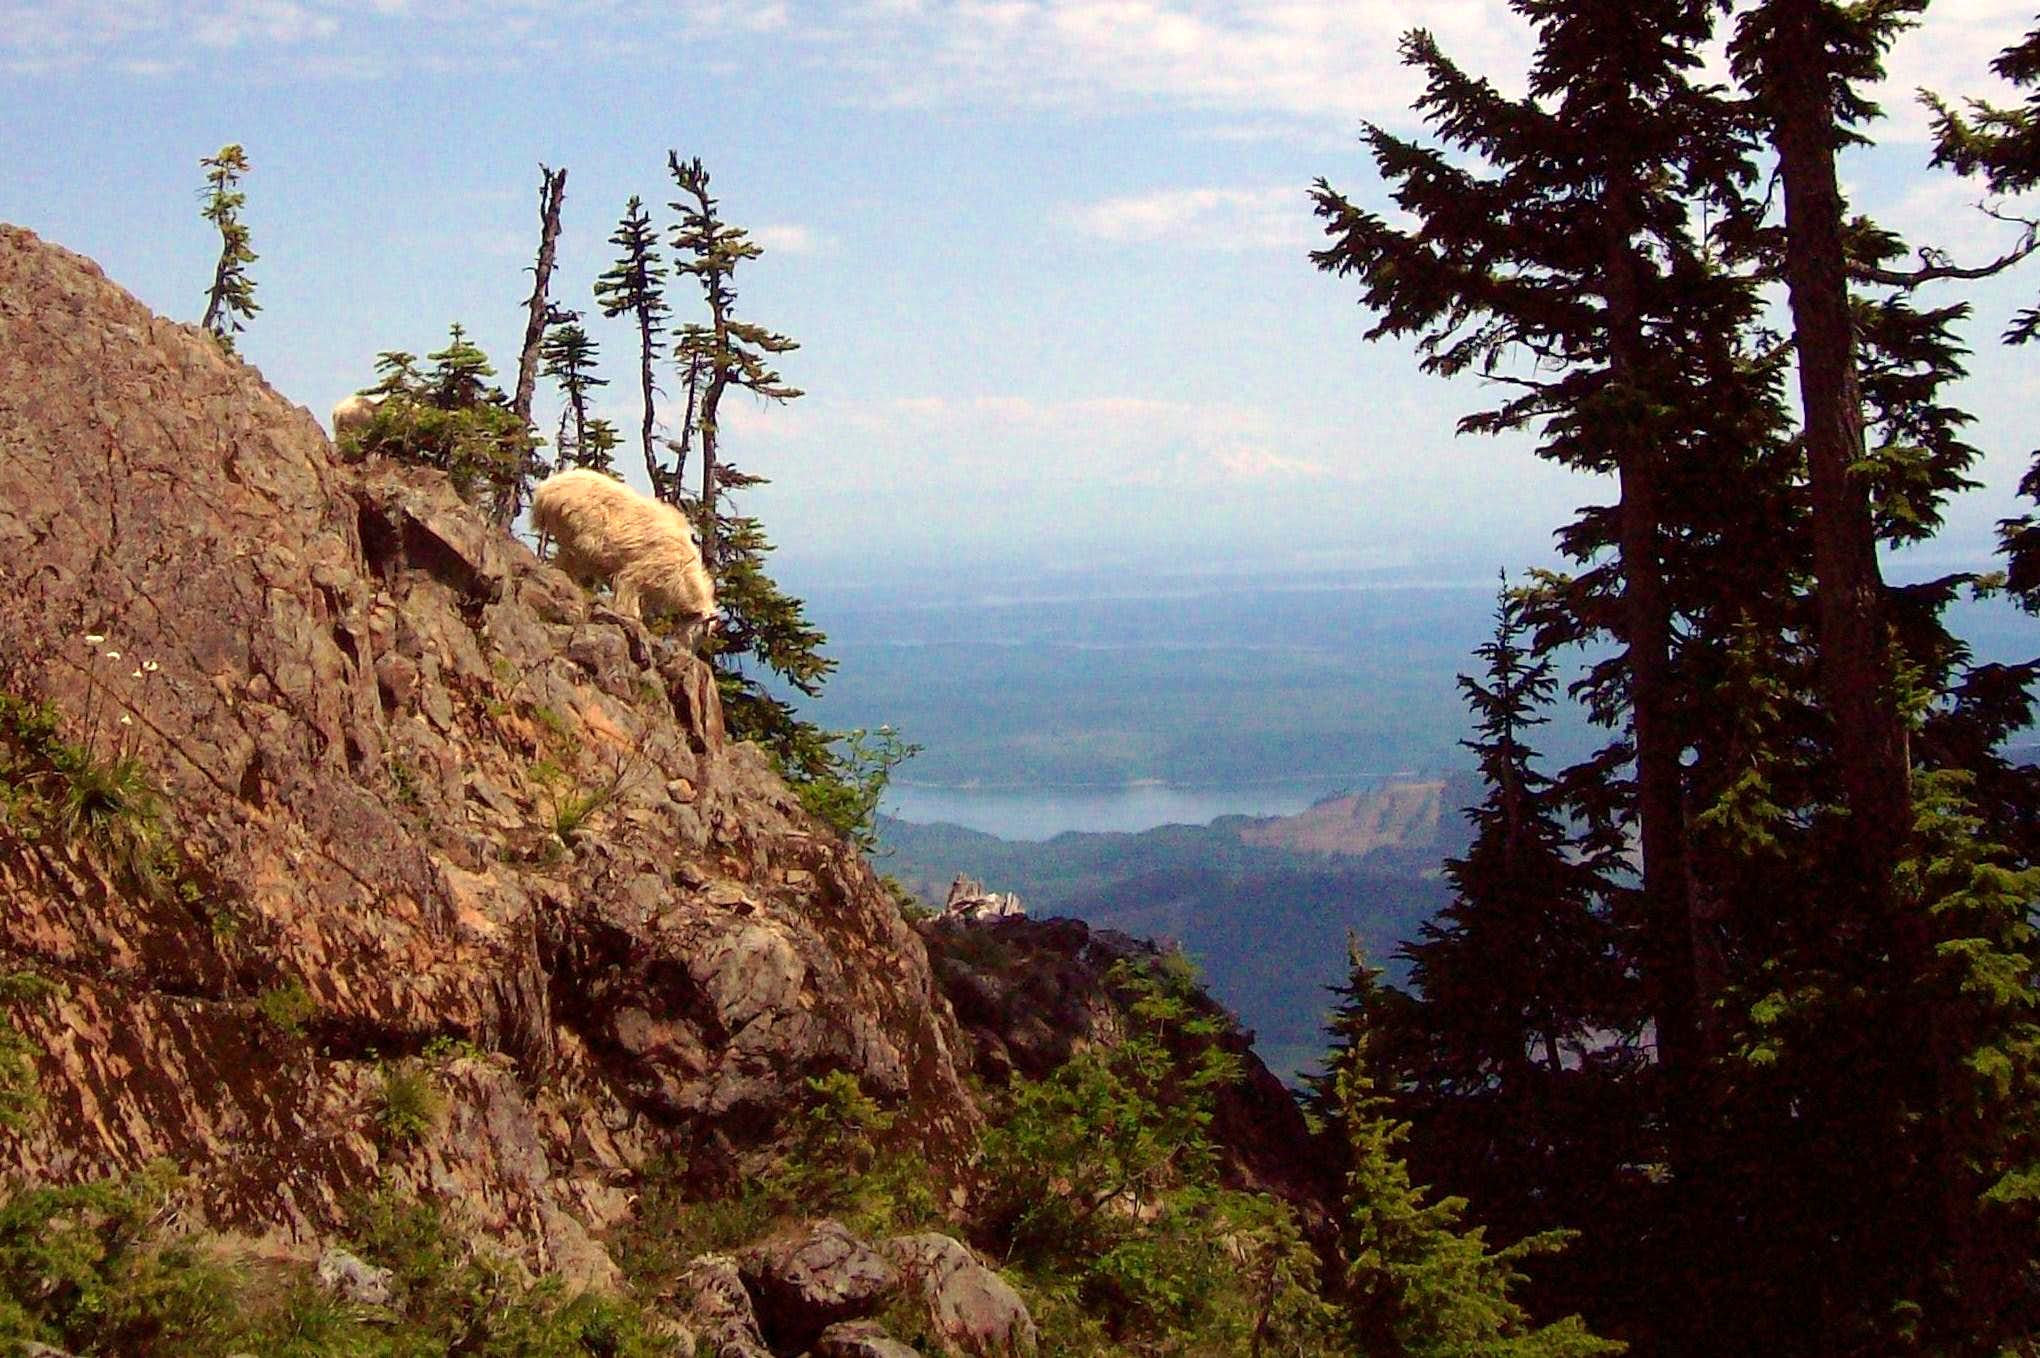 Mount Ellinor: Home of tame goats and great views